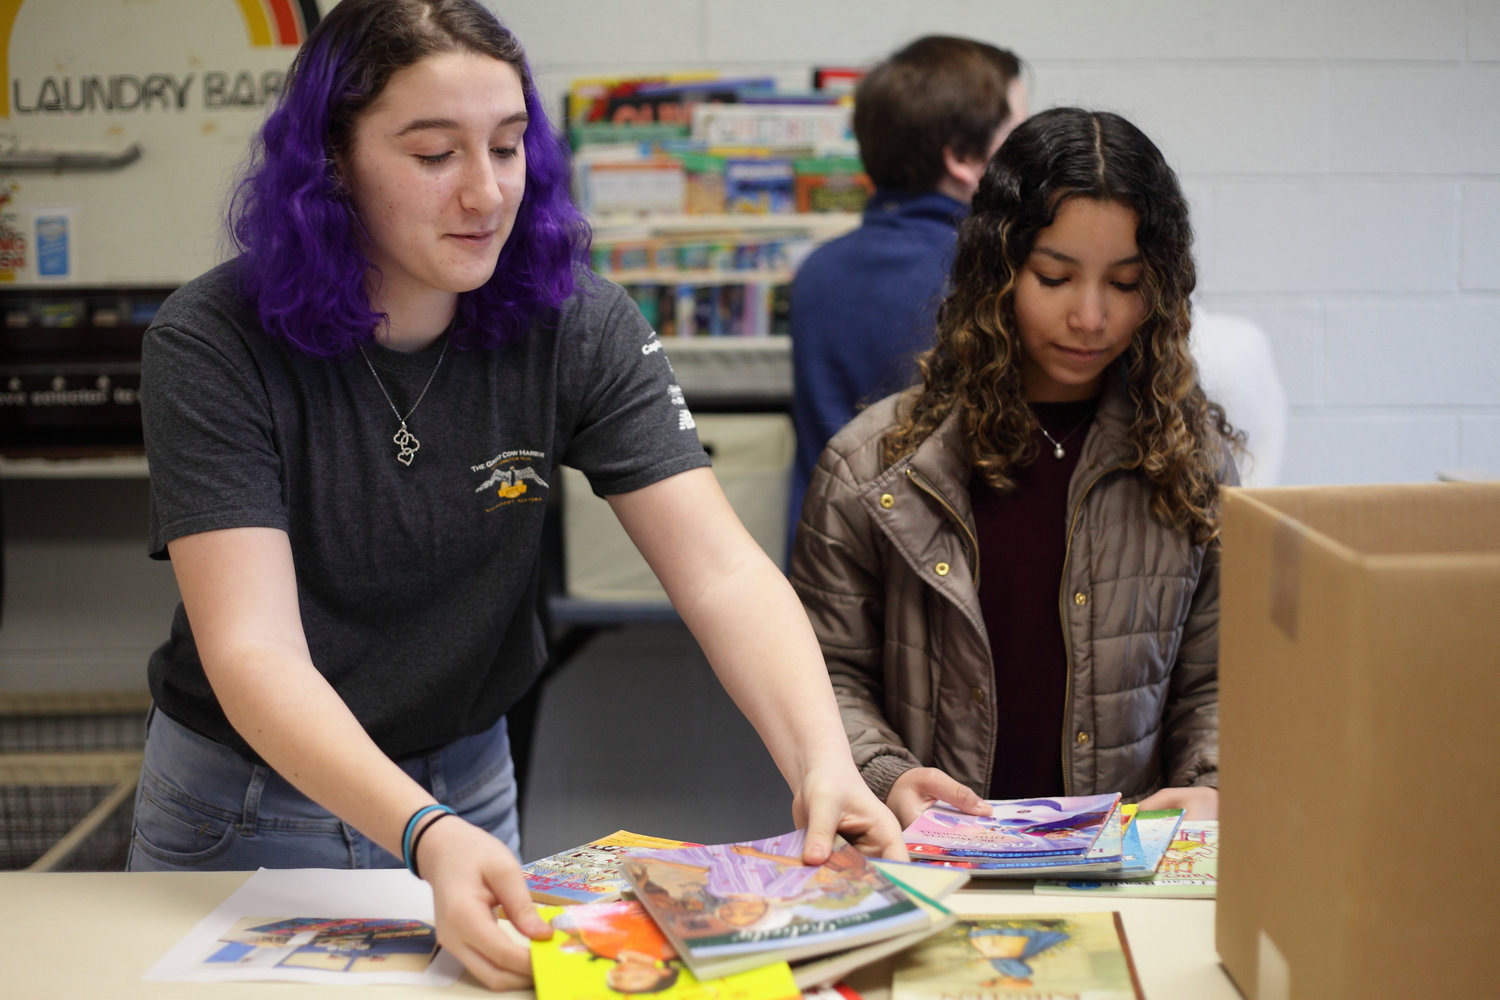 Carly Wolfe, 14, far left, and Bela Castellanos, 13, found books they enjoyed reading when they were children among those that were brought to the laundromat.